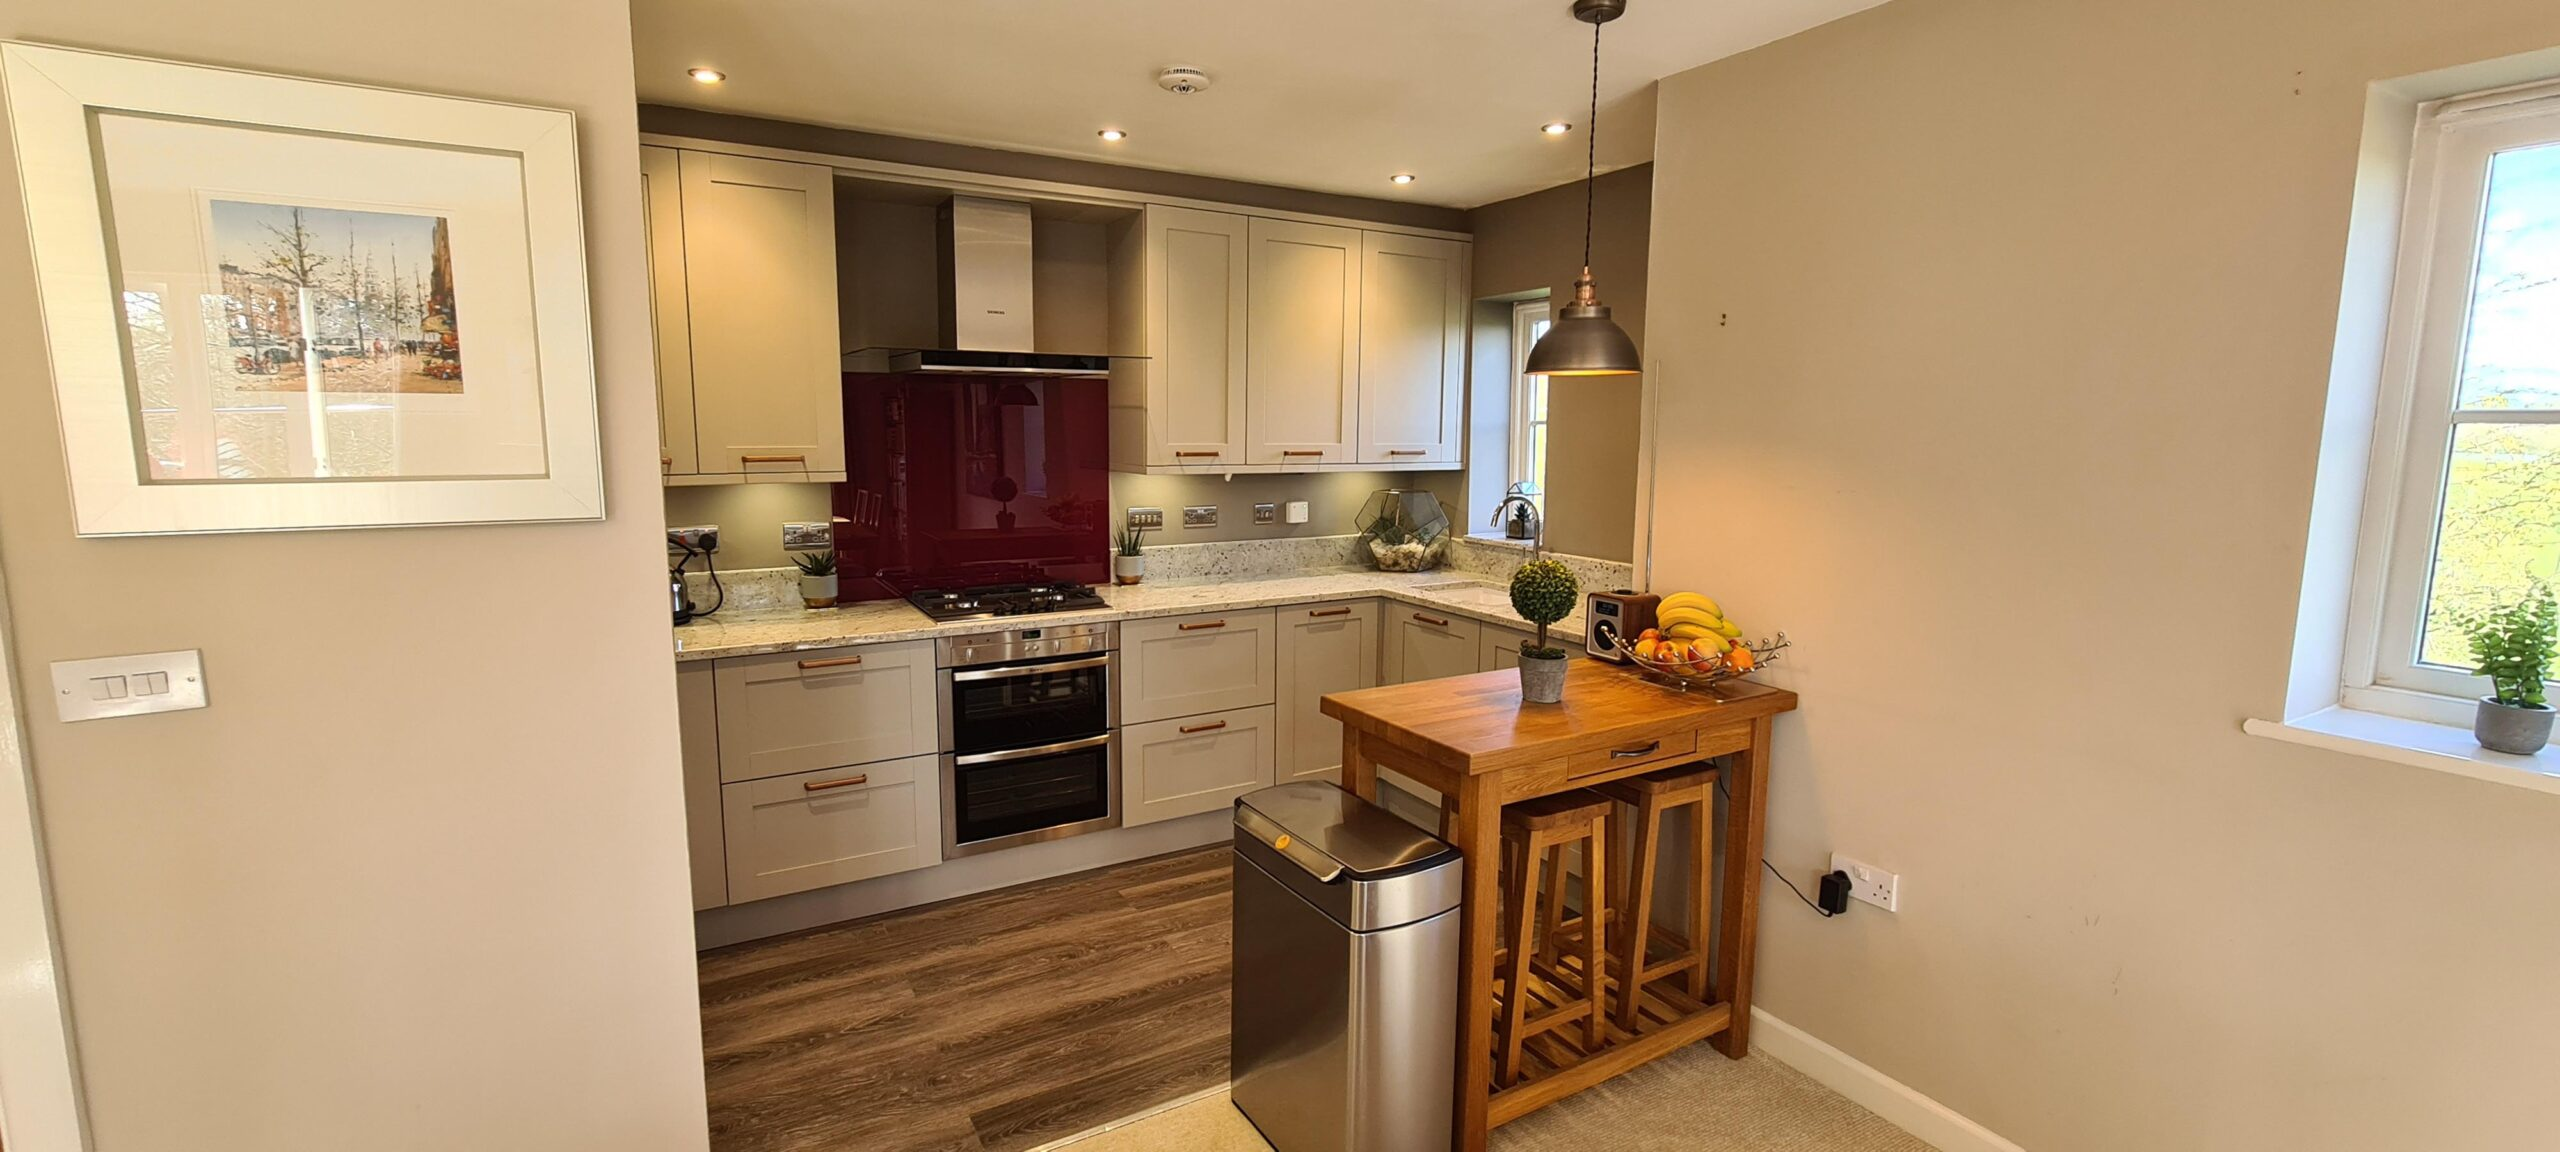 Image of a traditional kitchen design with contemporary elements, such as the integrated kitchen appliance and the white granite worktop.